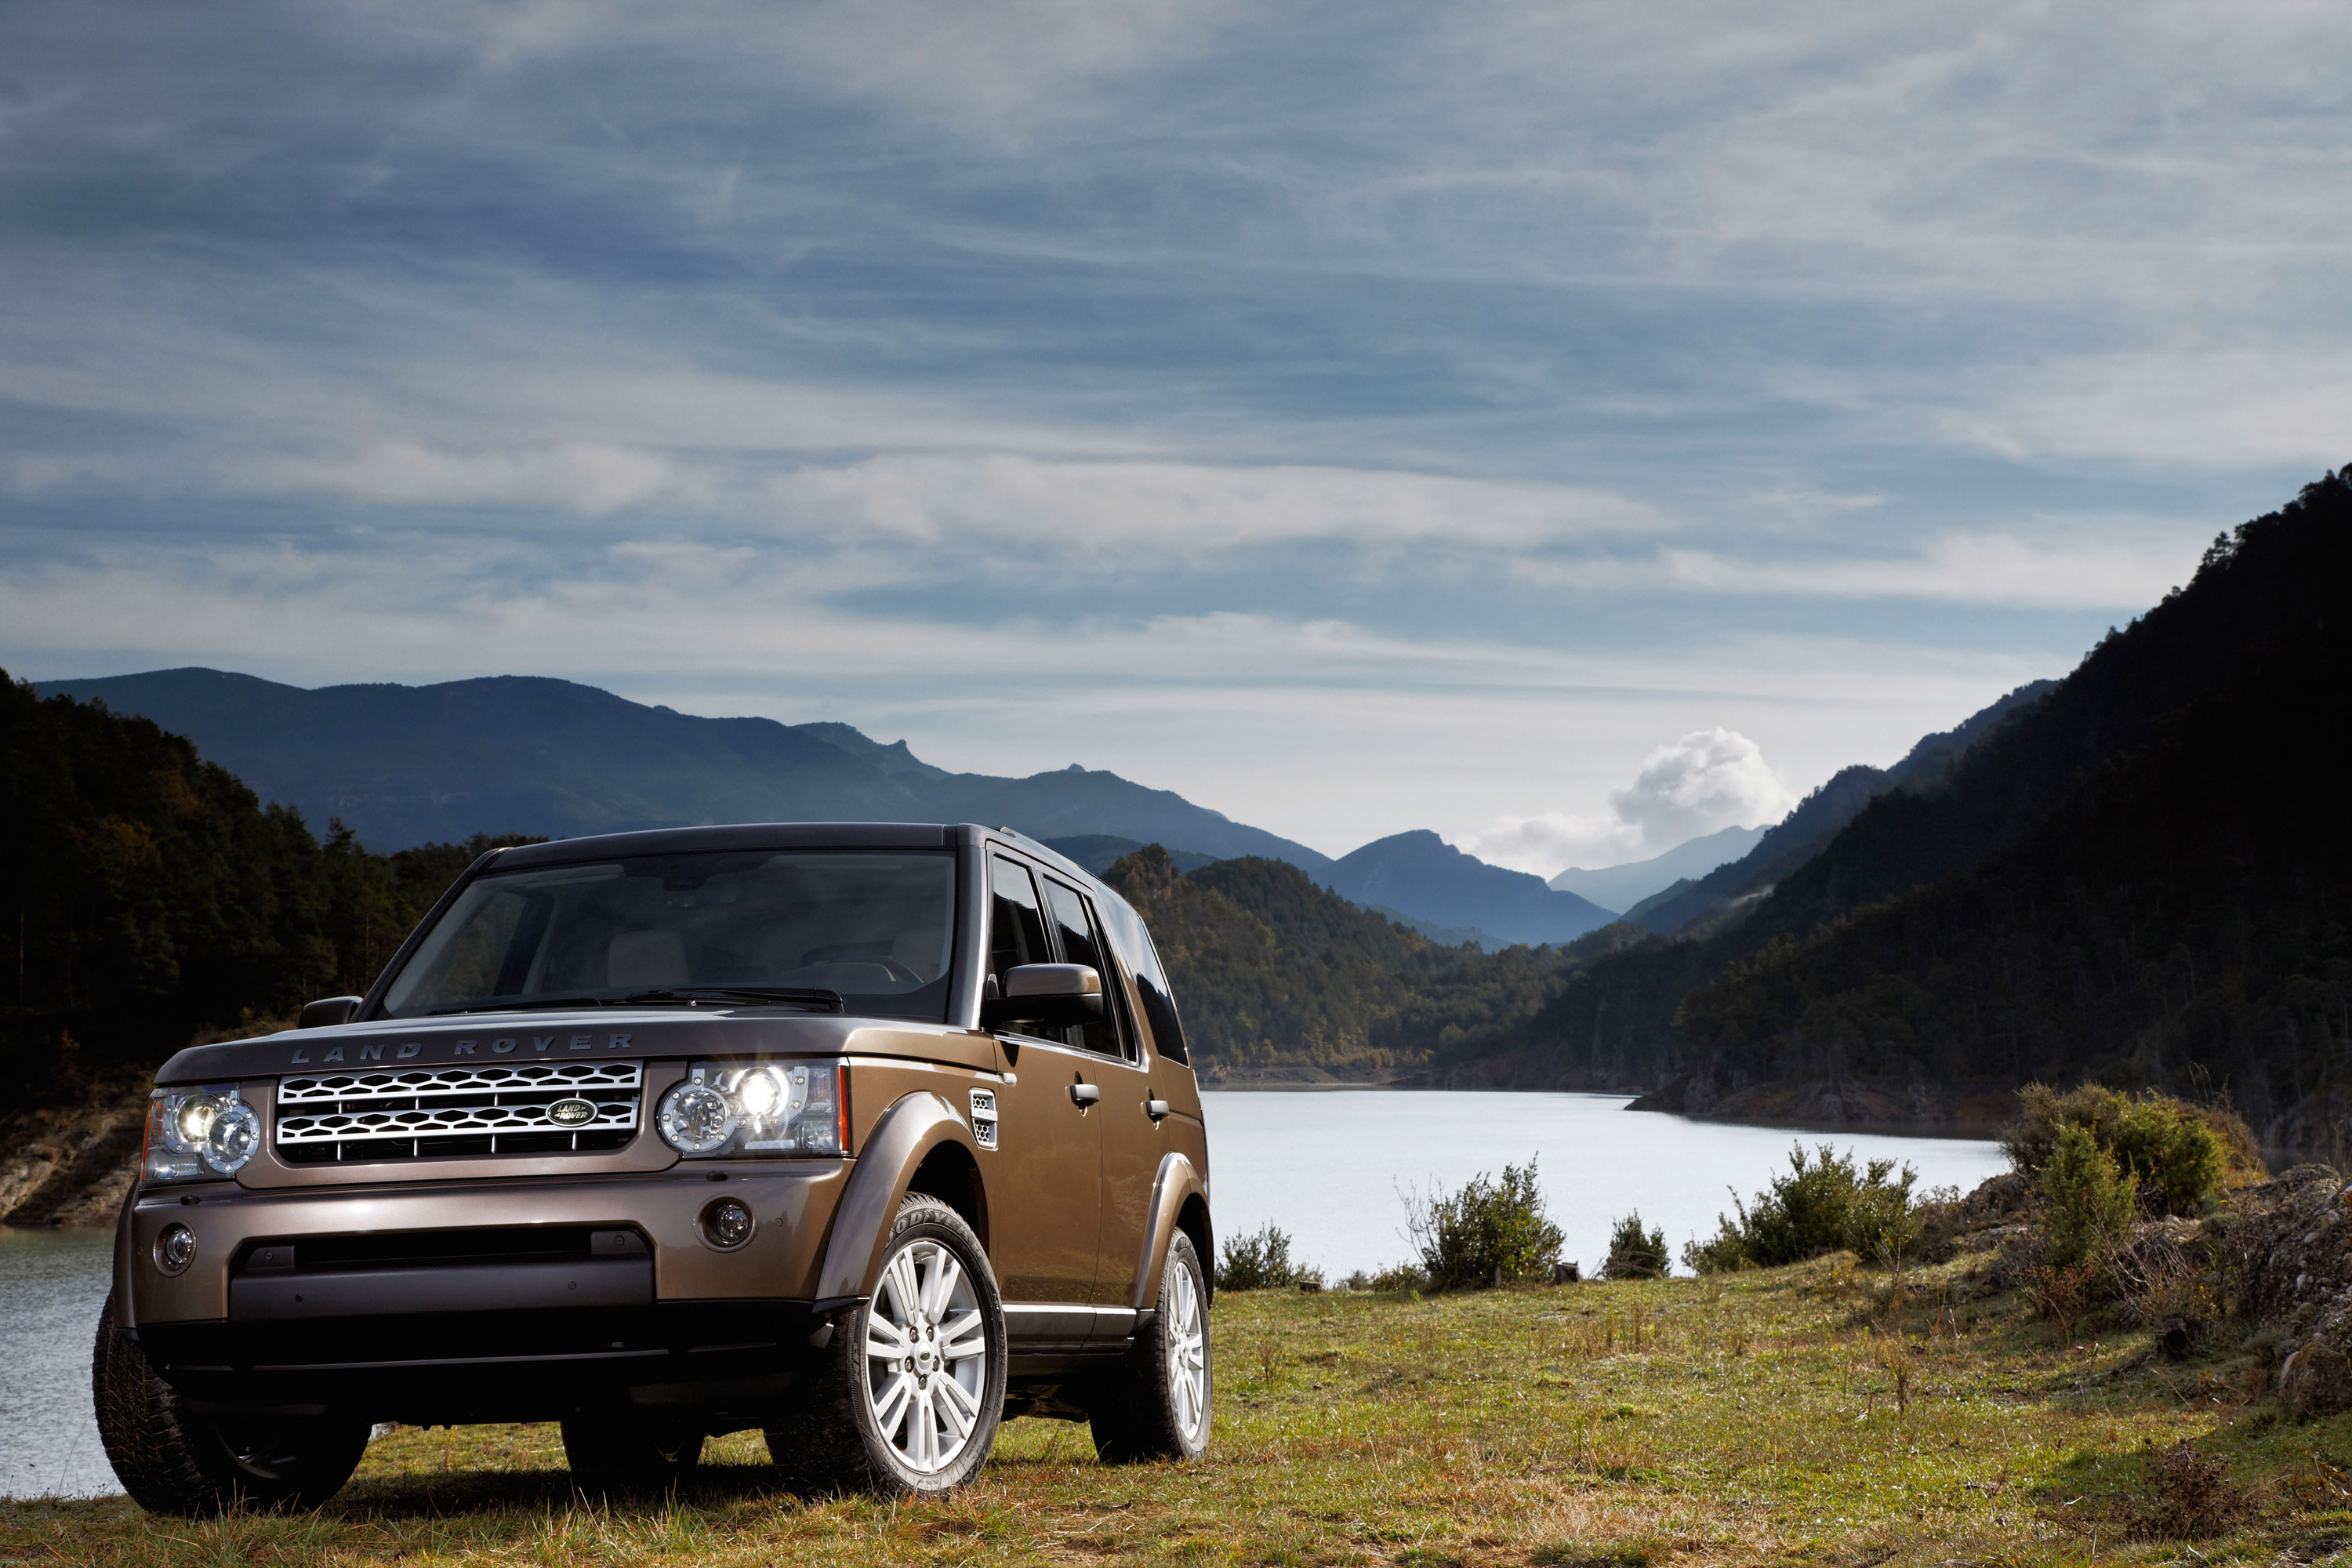 Land Rover Discovery 4 photo #1